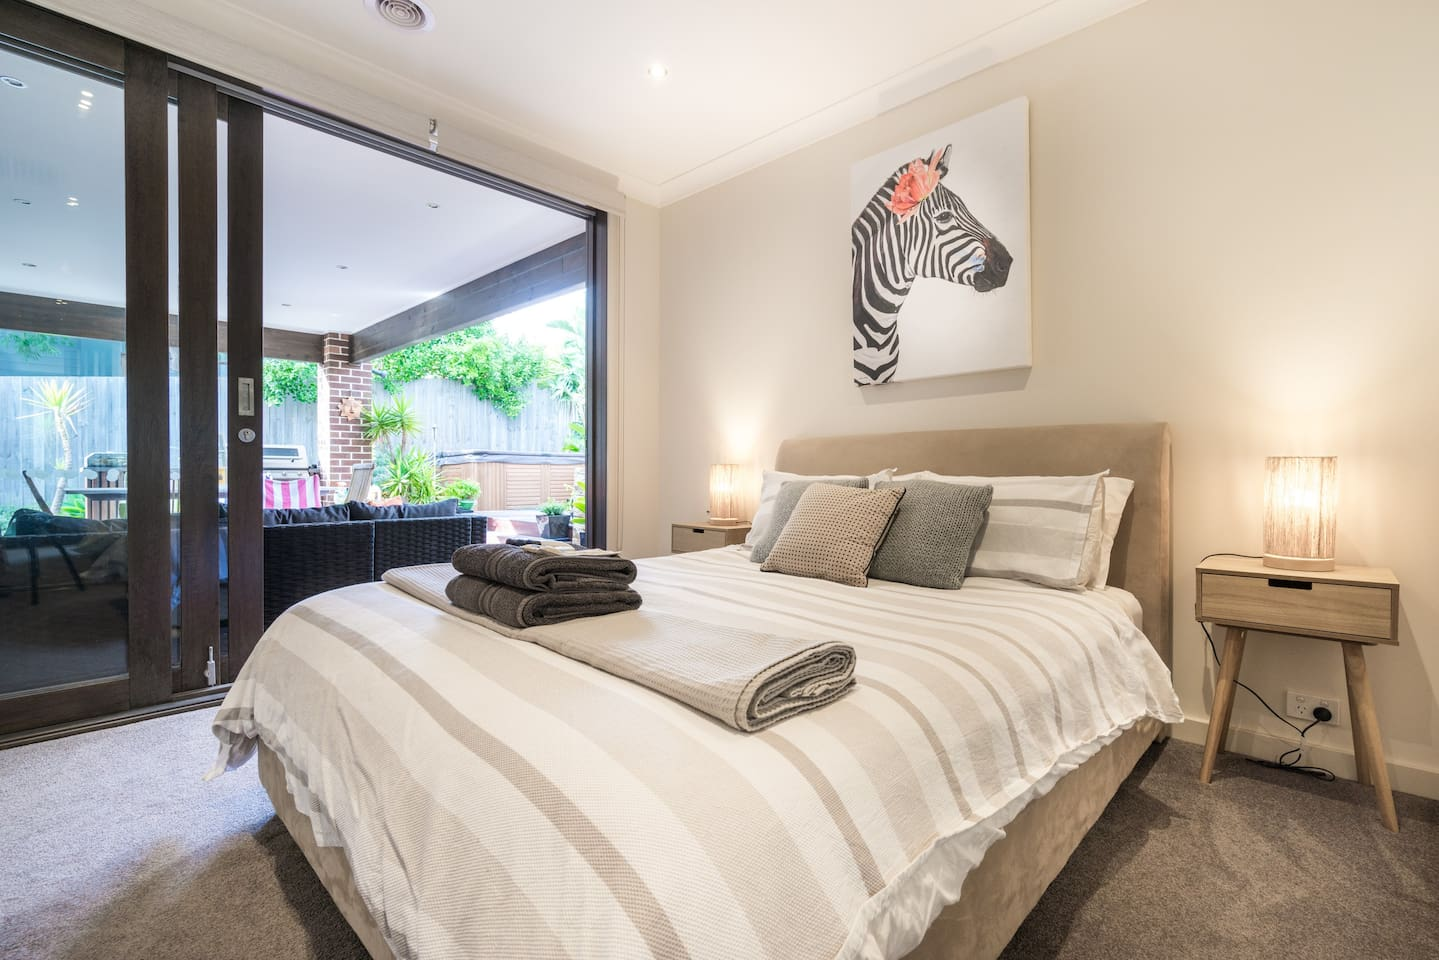 Main Queen bedroom looking onto the shared deck and lush garden